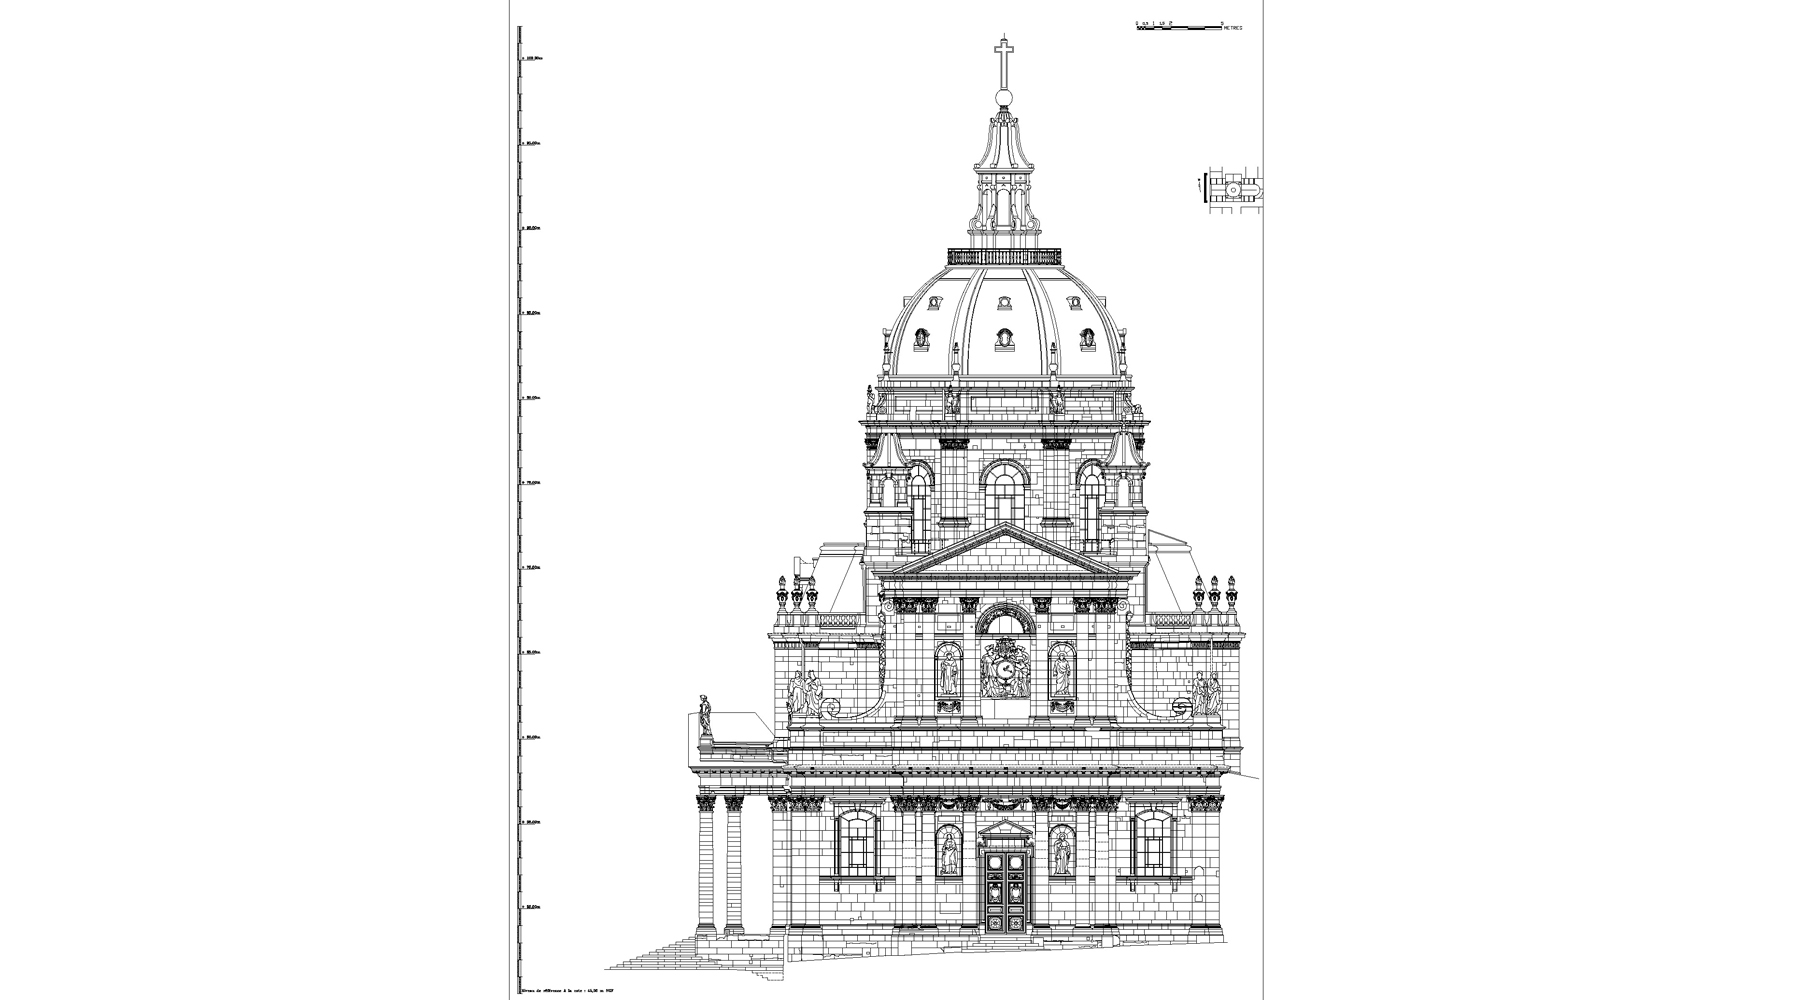 Chapelle de la Sorbonne, Paris - Elevation O